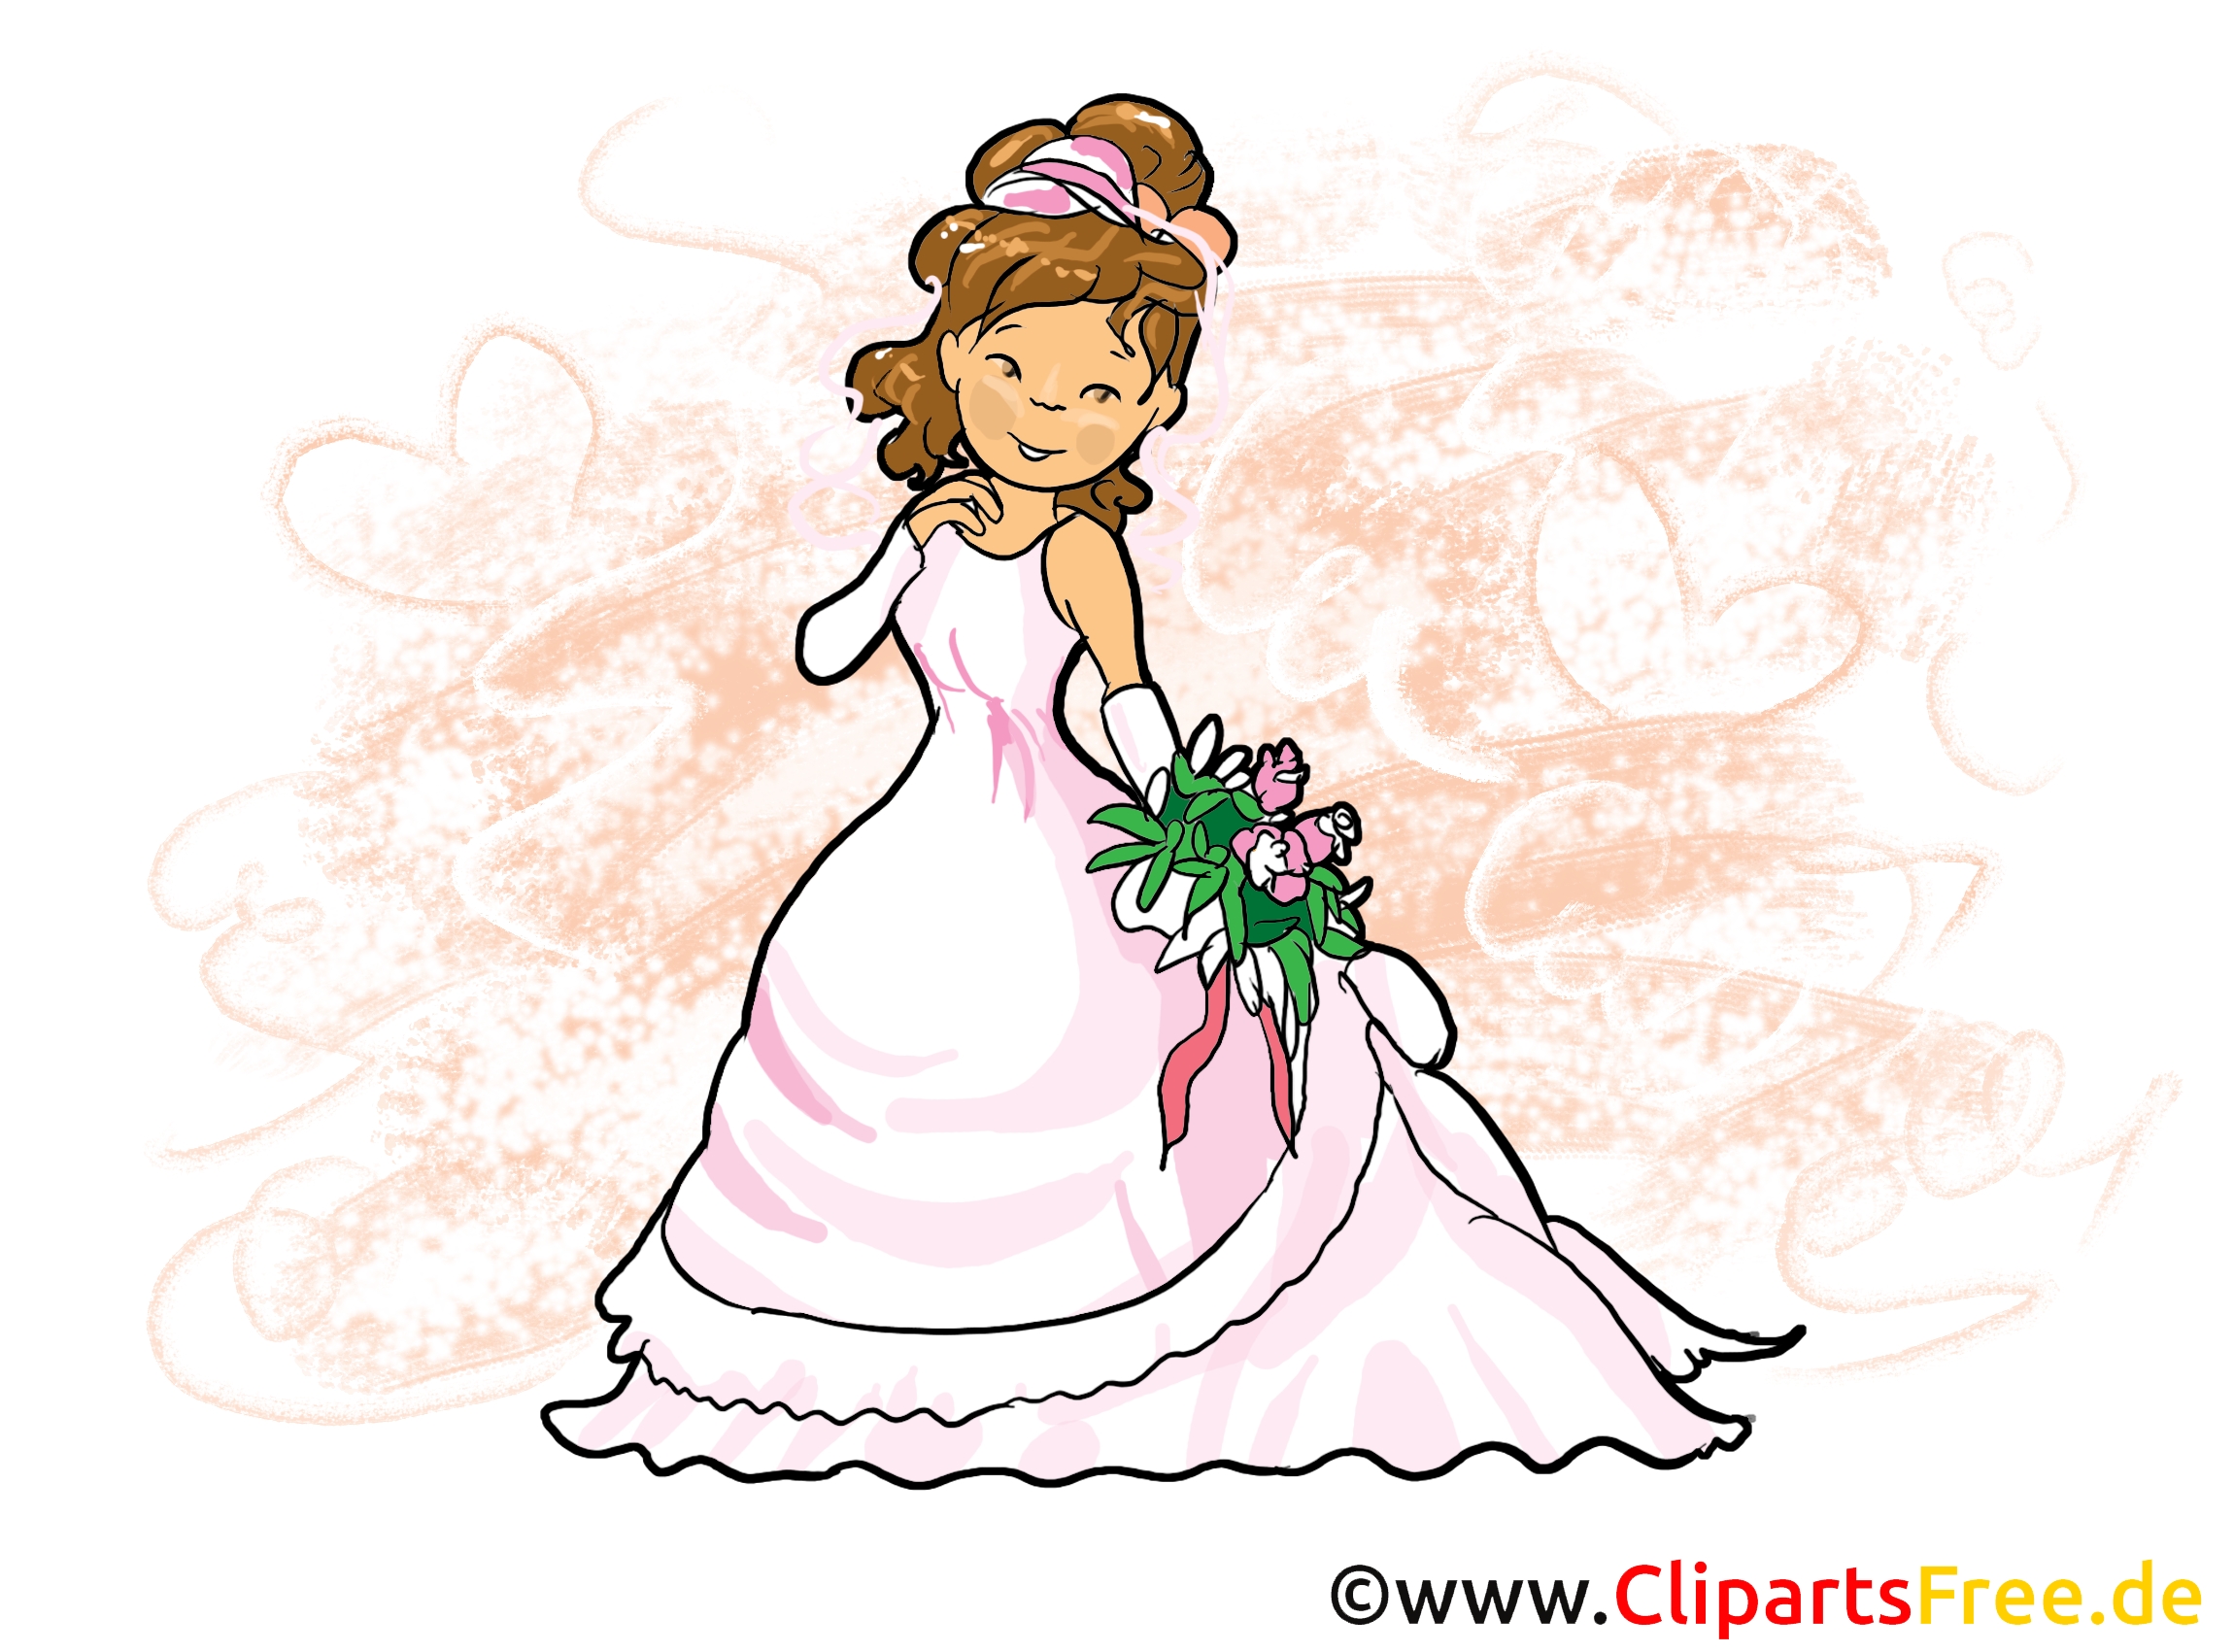 Mariage clipart #5, Download drawings